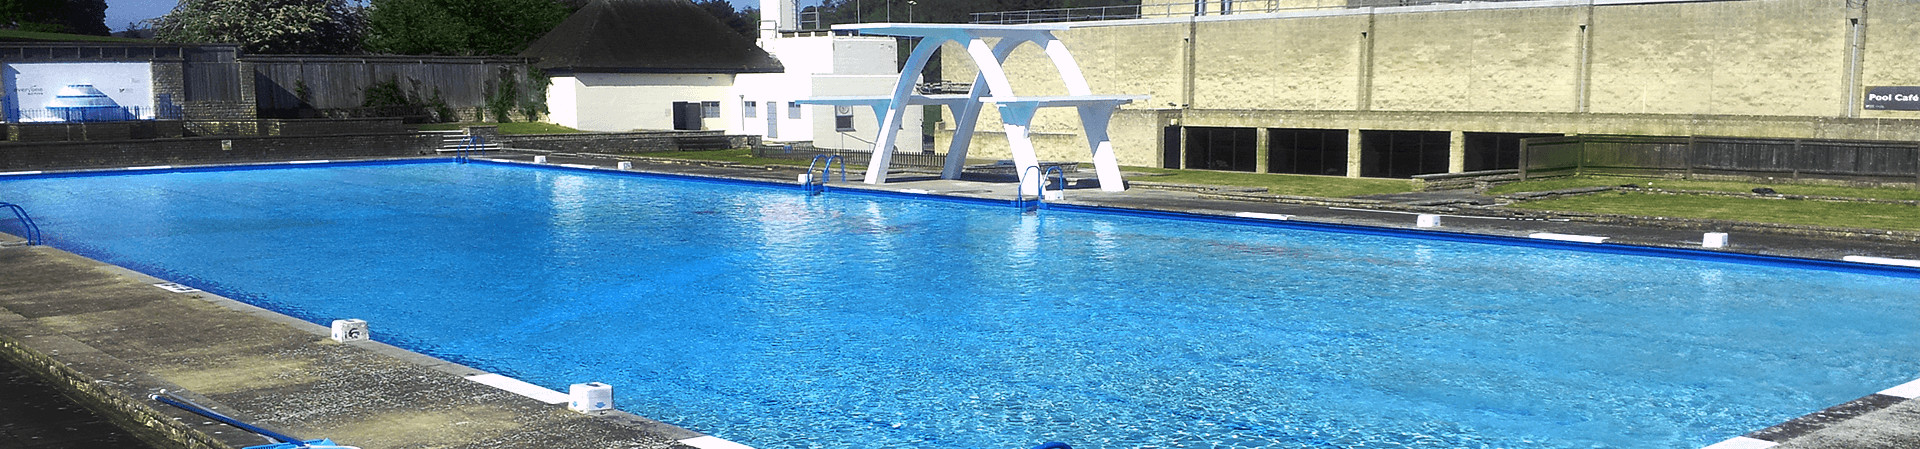 Stratford park leisure centre everyone active for Stratford swimming pool timetable